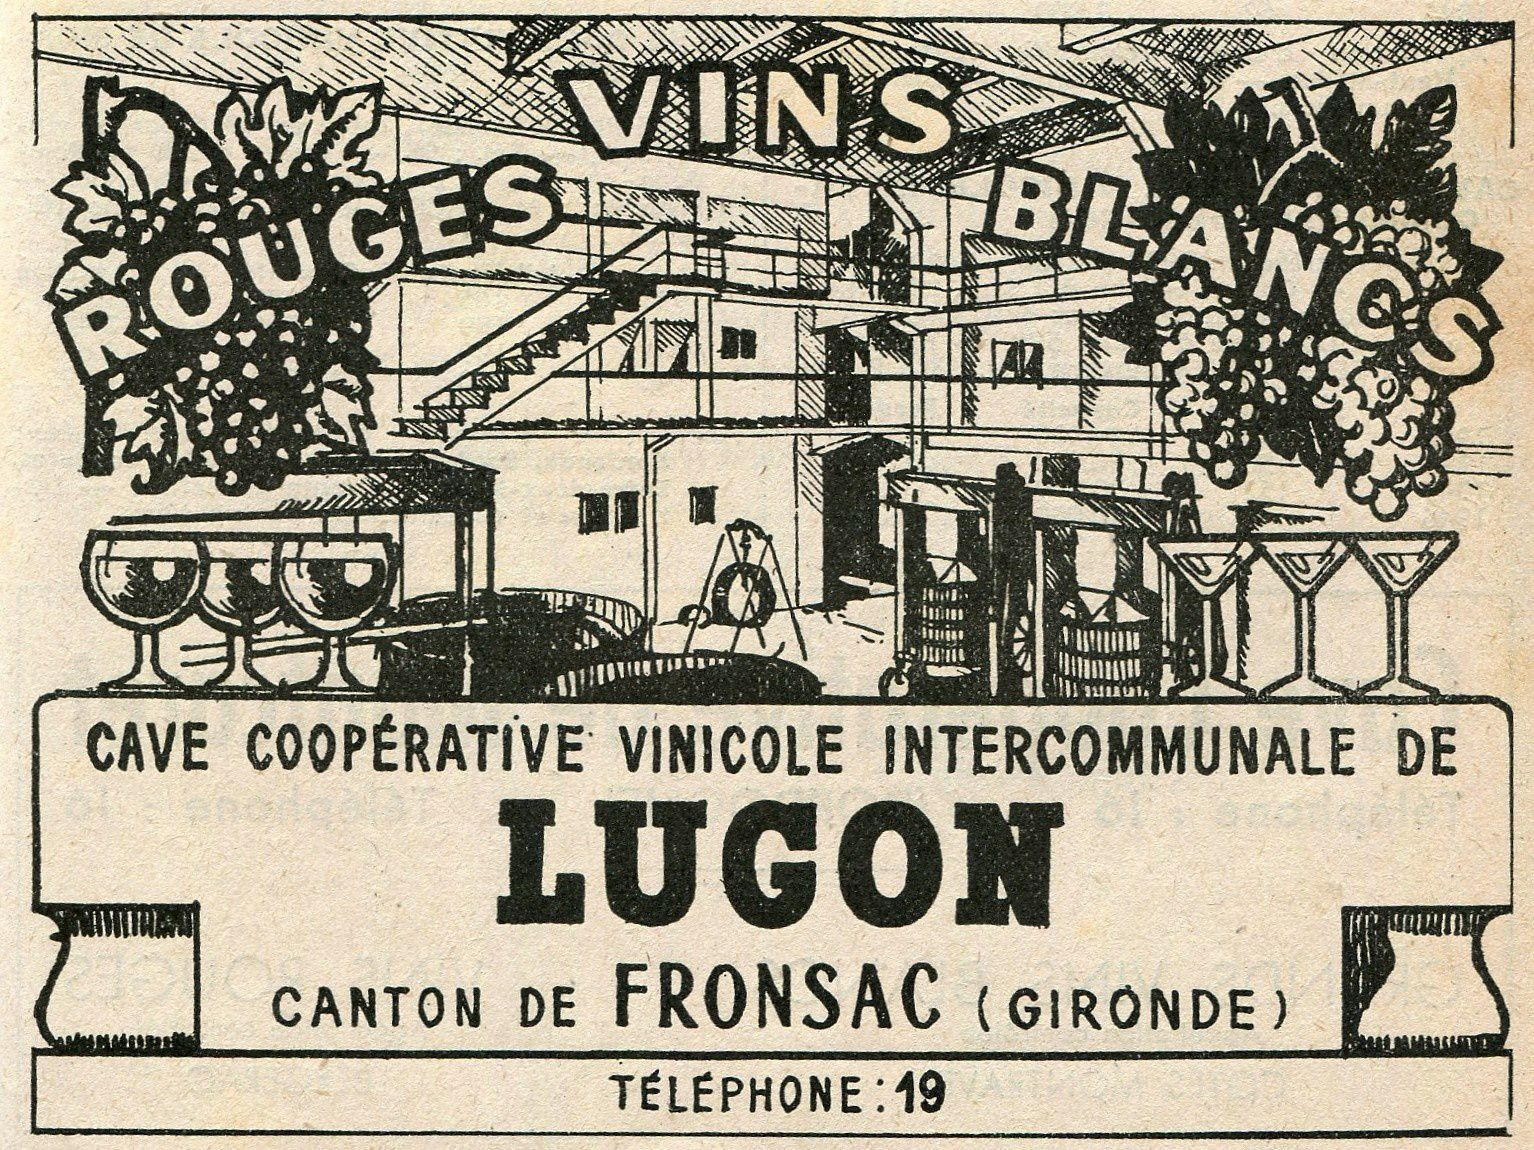 LUGON (Gironde) : La cave coopérative intercommunale.